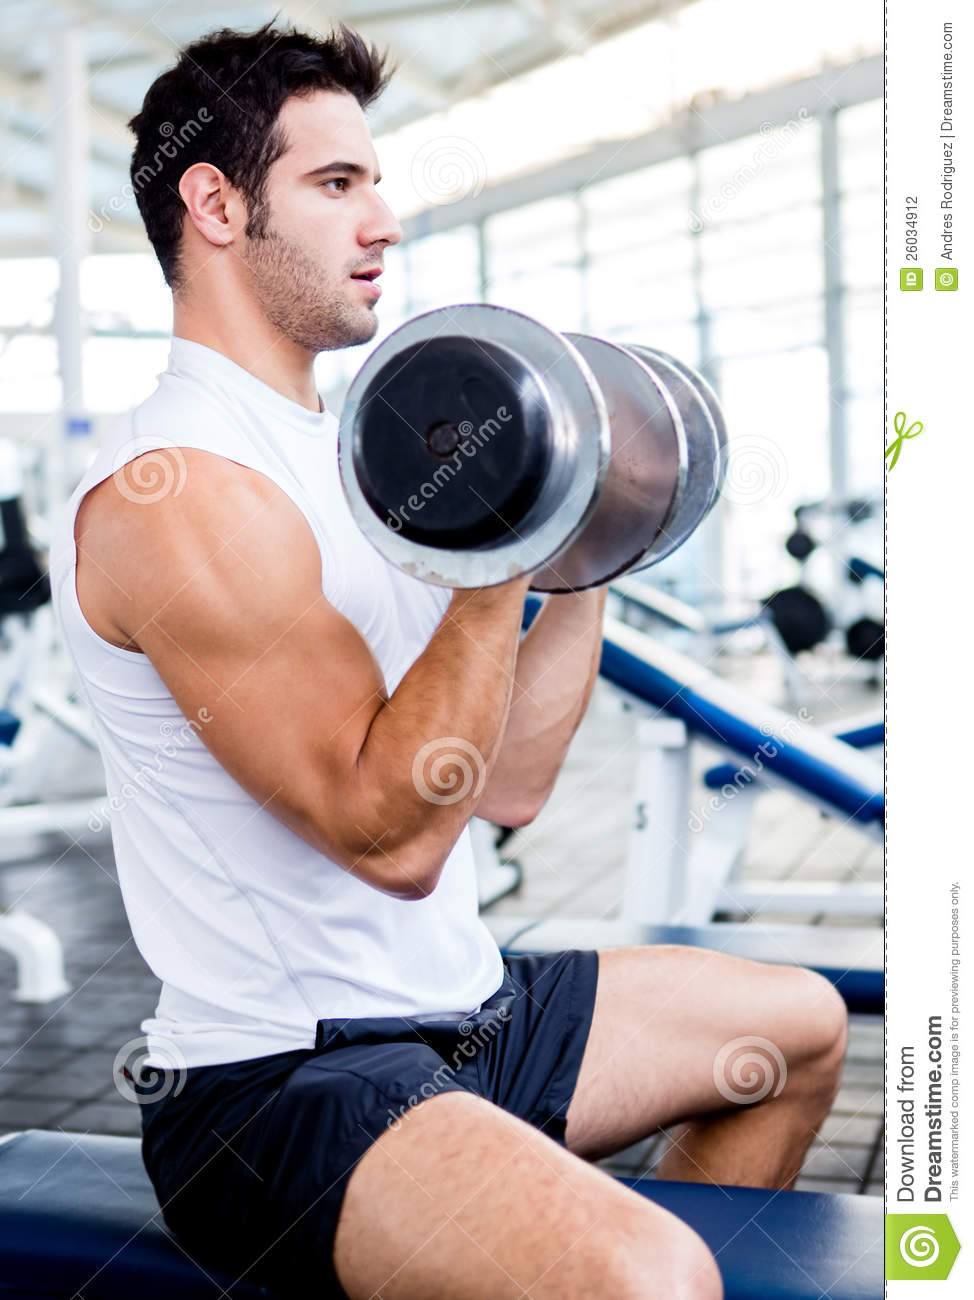 Strong Man At The Gym Stock Photography - Image: 26034912